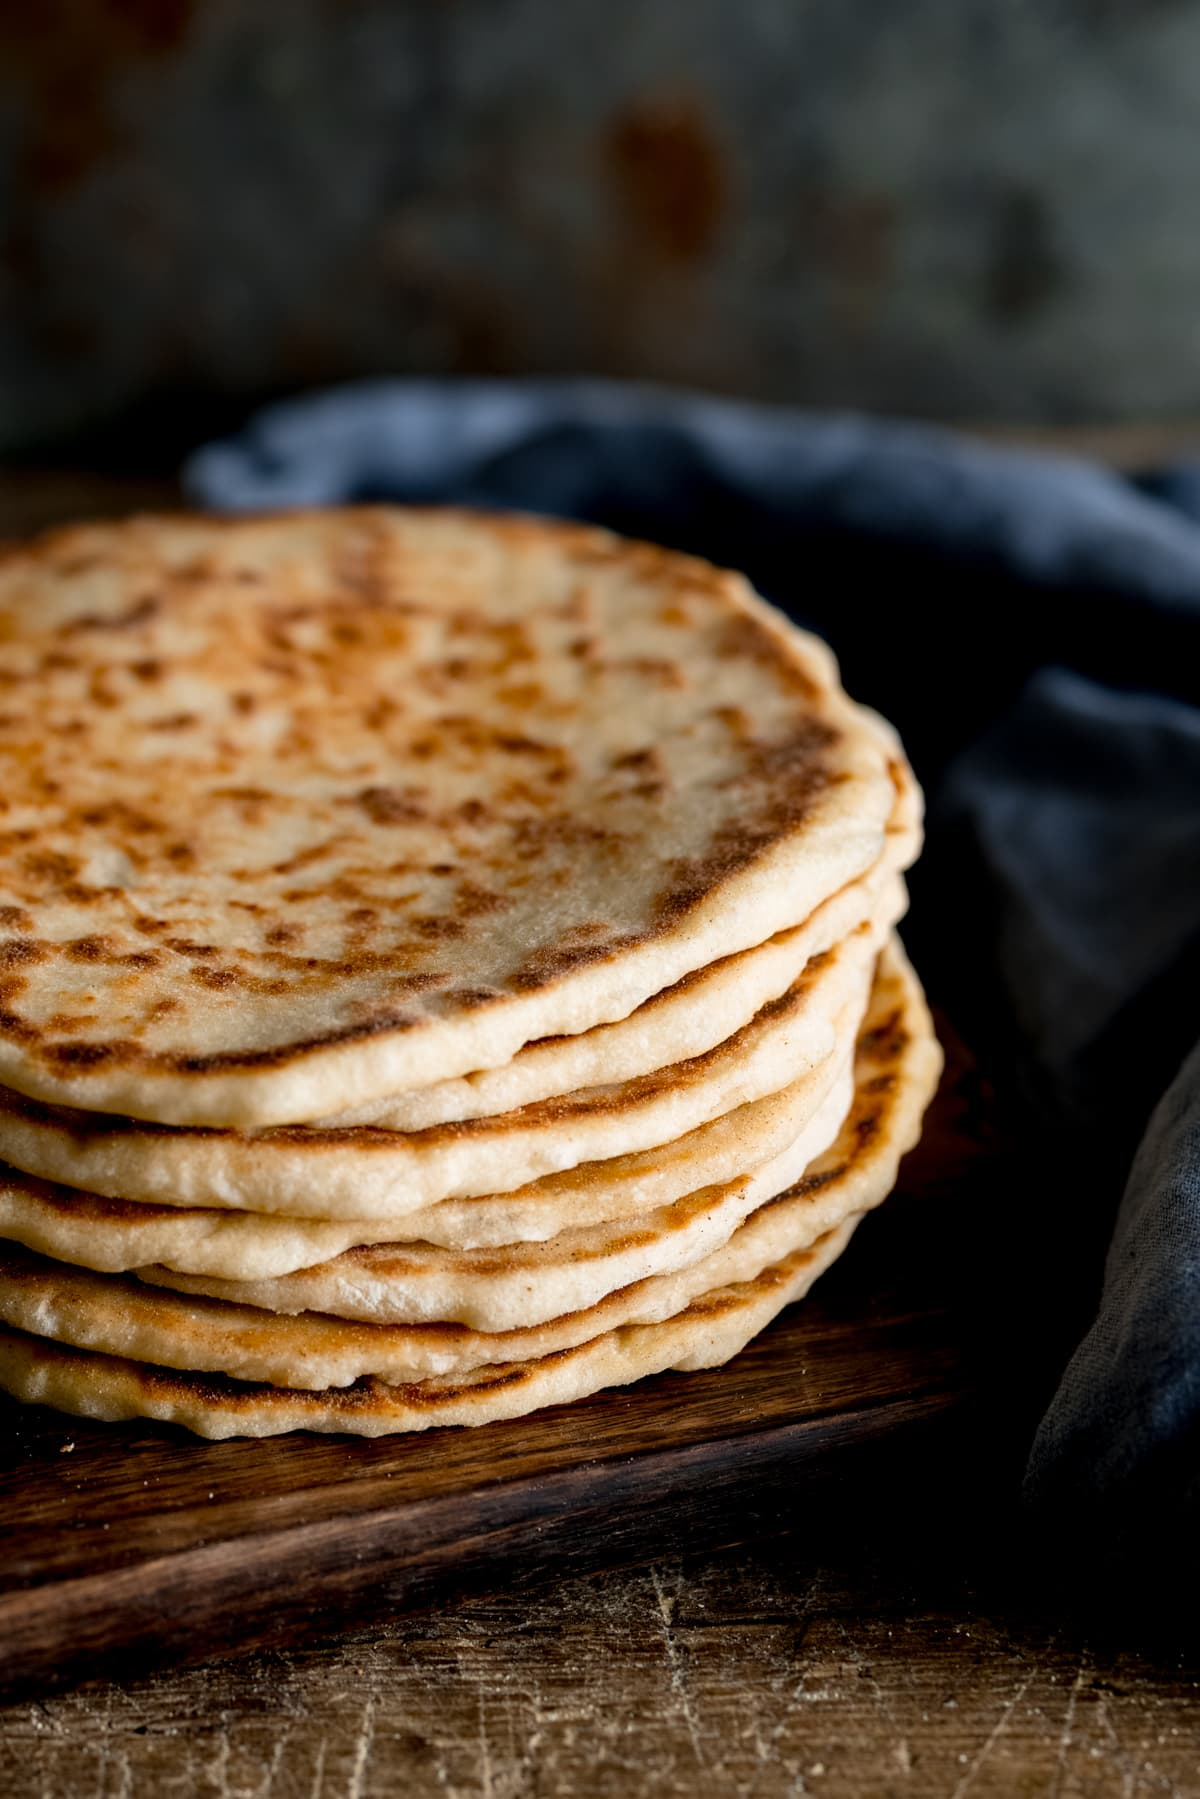 A stack of flatbreads on a wooden board against a dark background, next to a blue napkin.